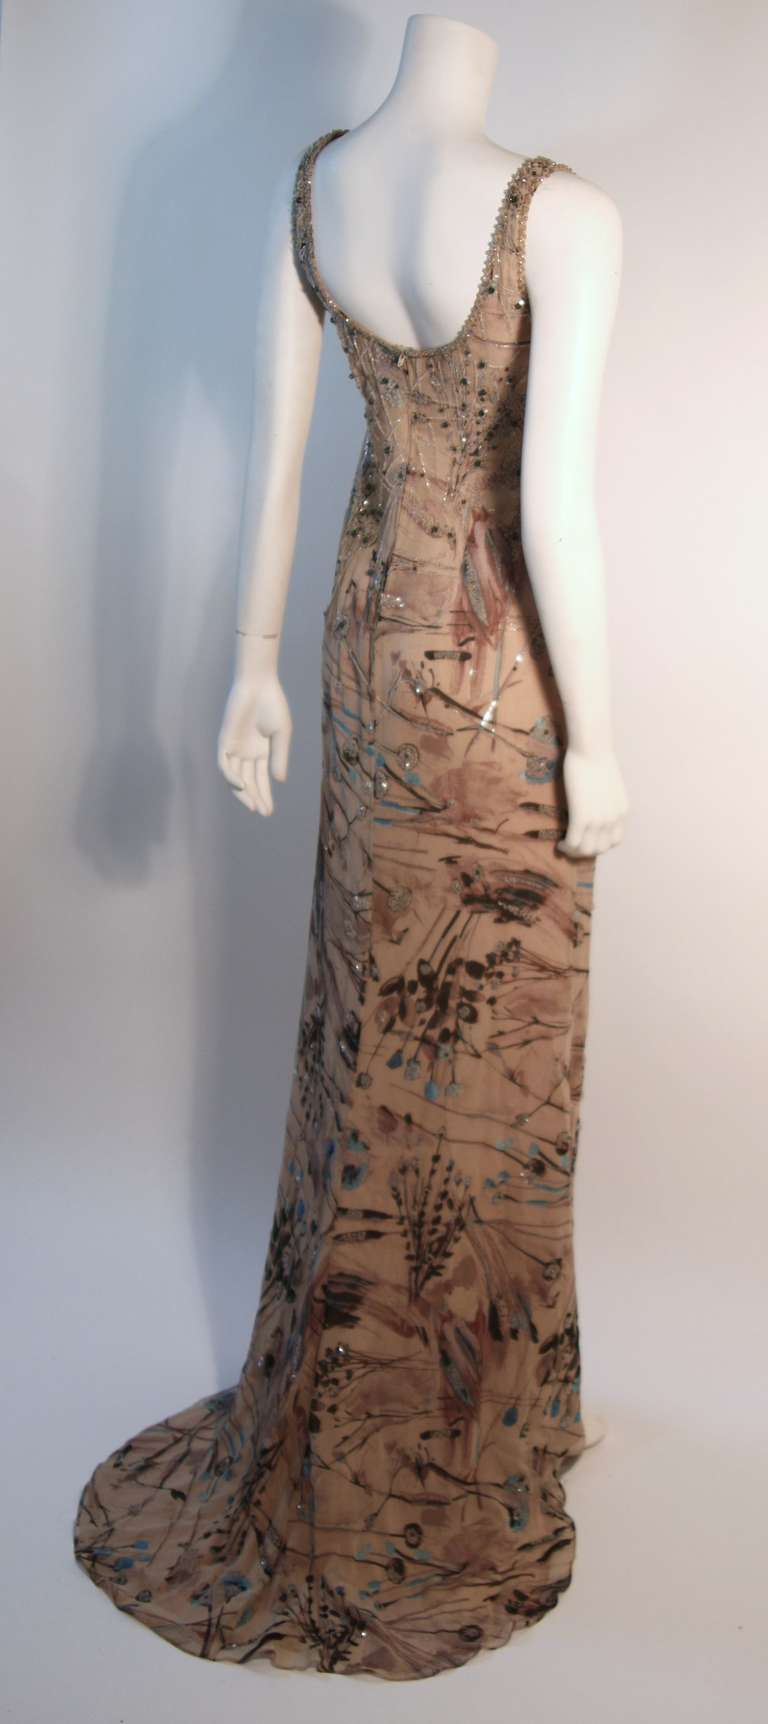 Badgley Mischka Beige Sleeveless Dress with Sequins Size 2 4